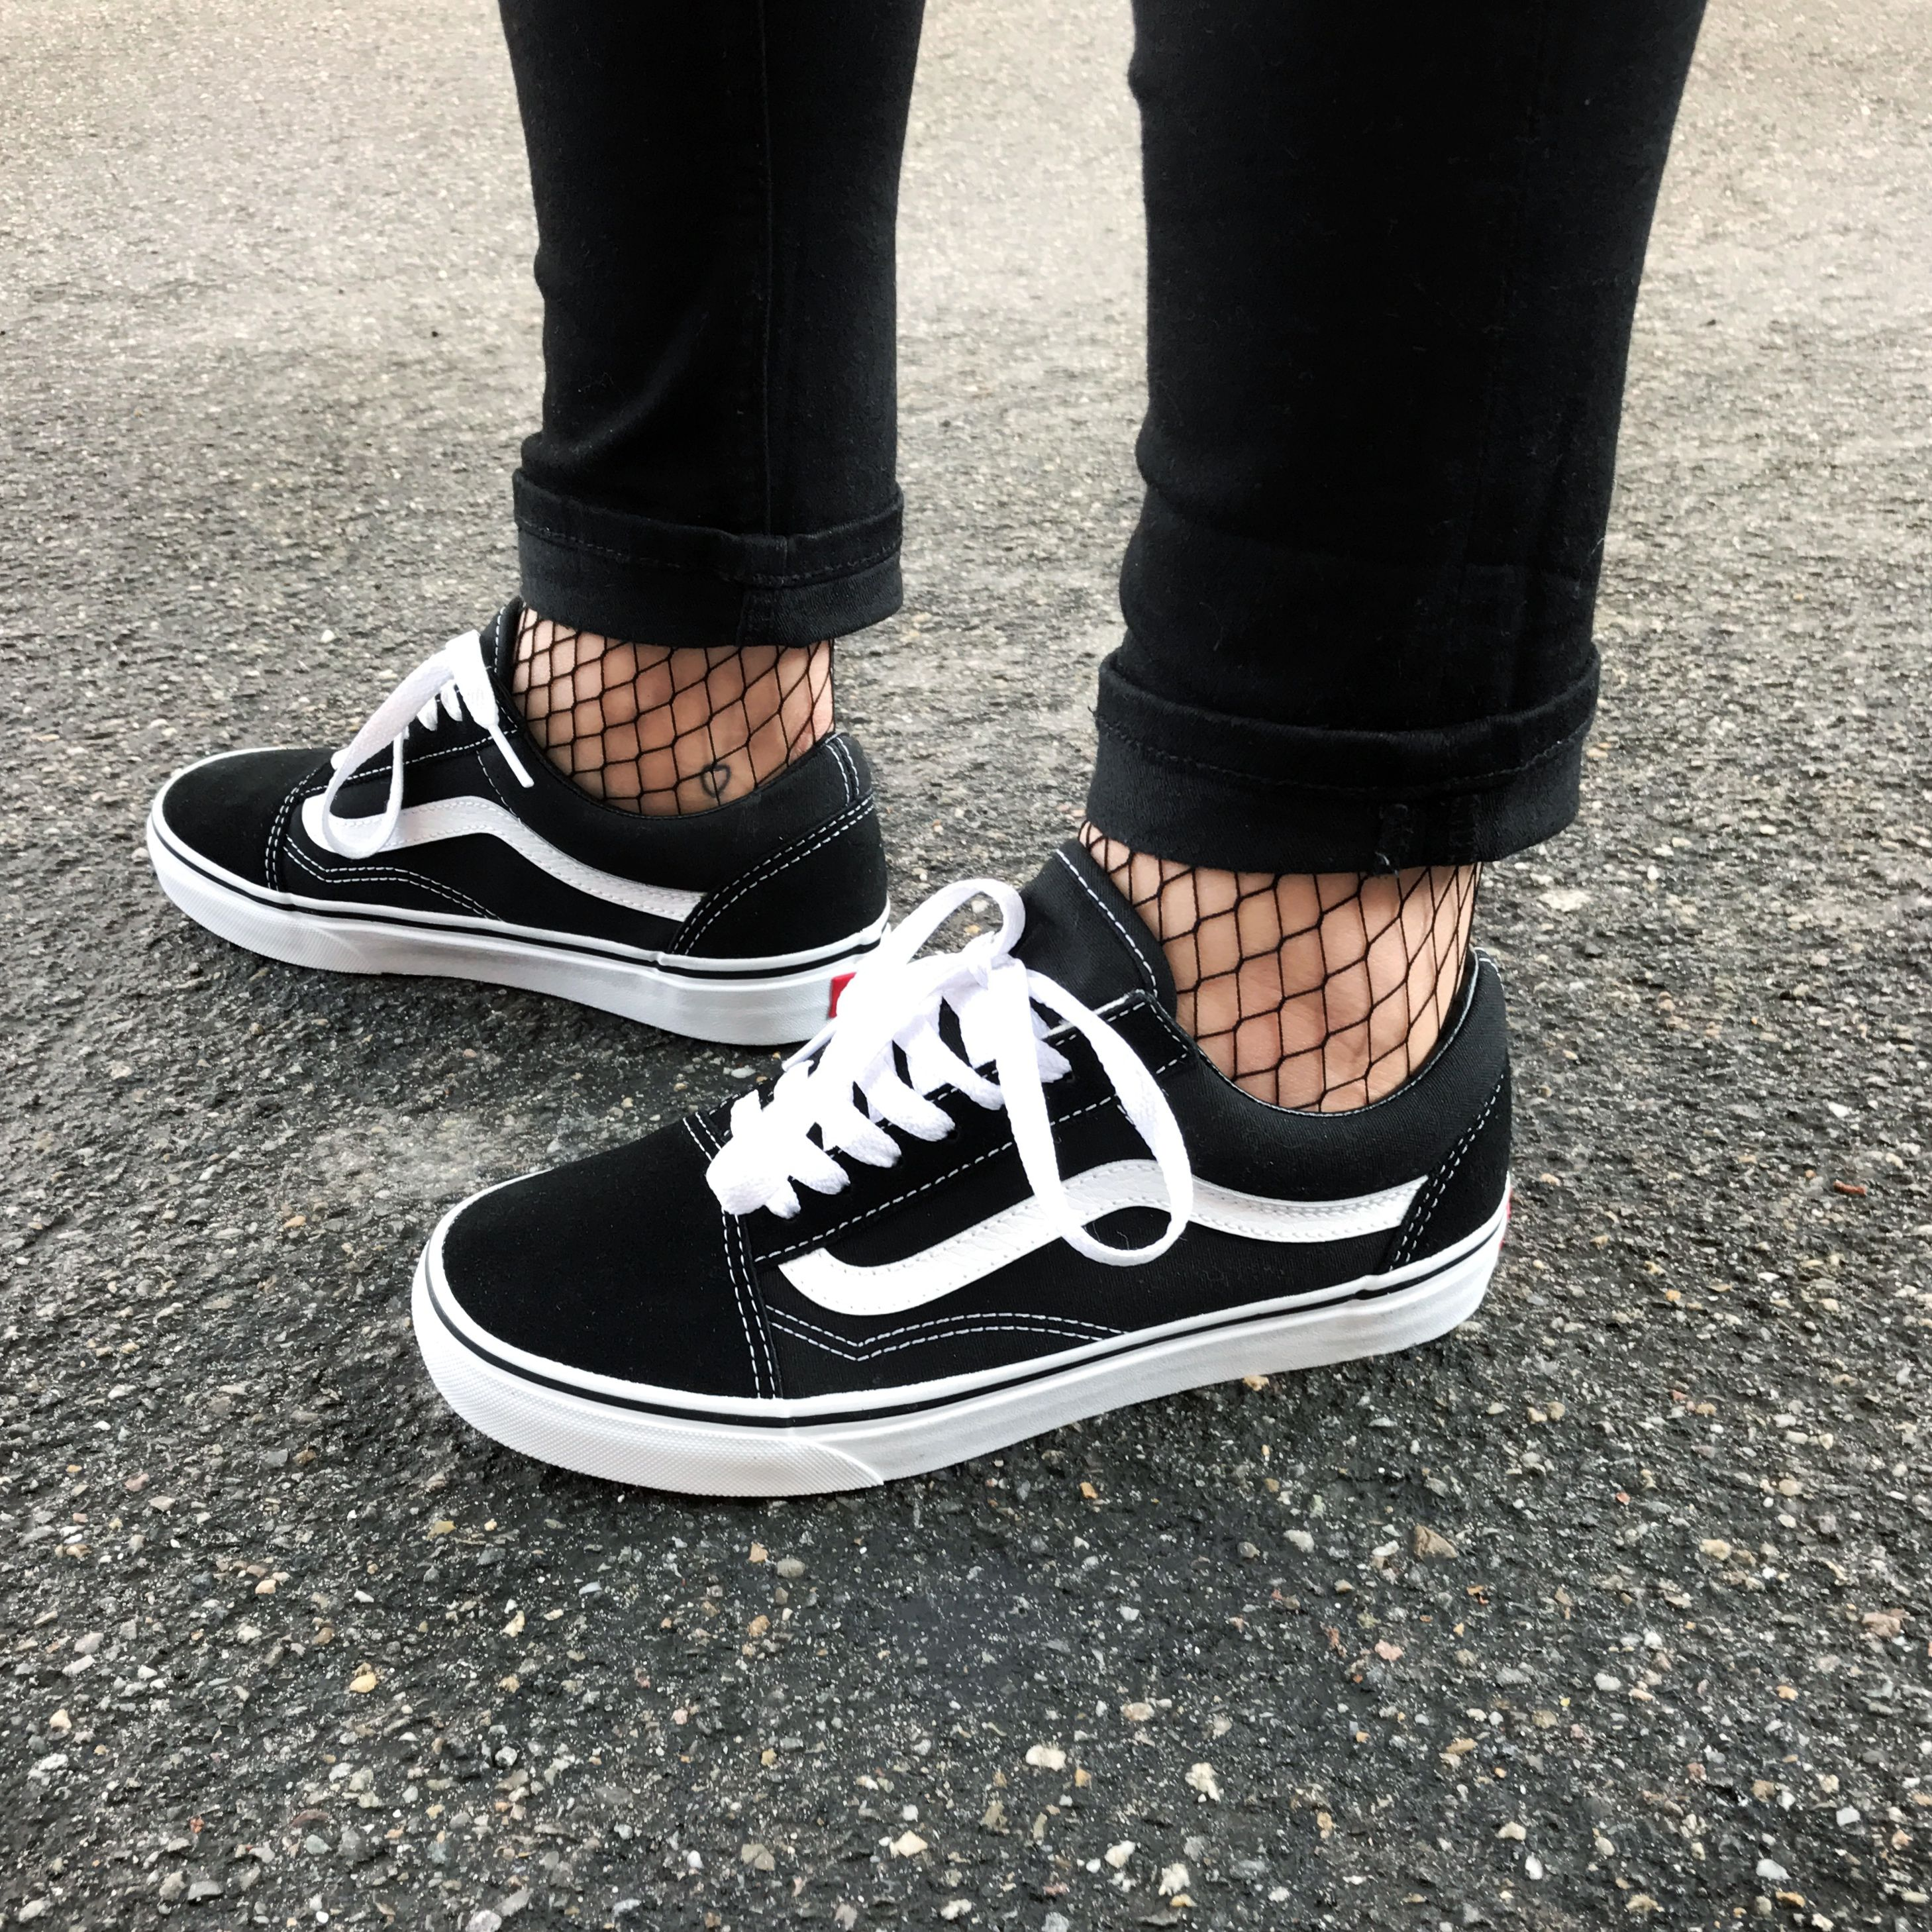 17dac6d4c72df Old skool Vans and fishnet stockings... my favourite combination at the  moment